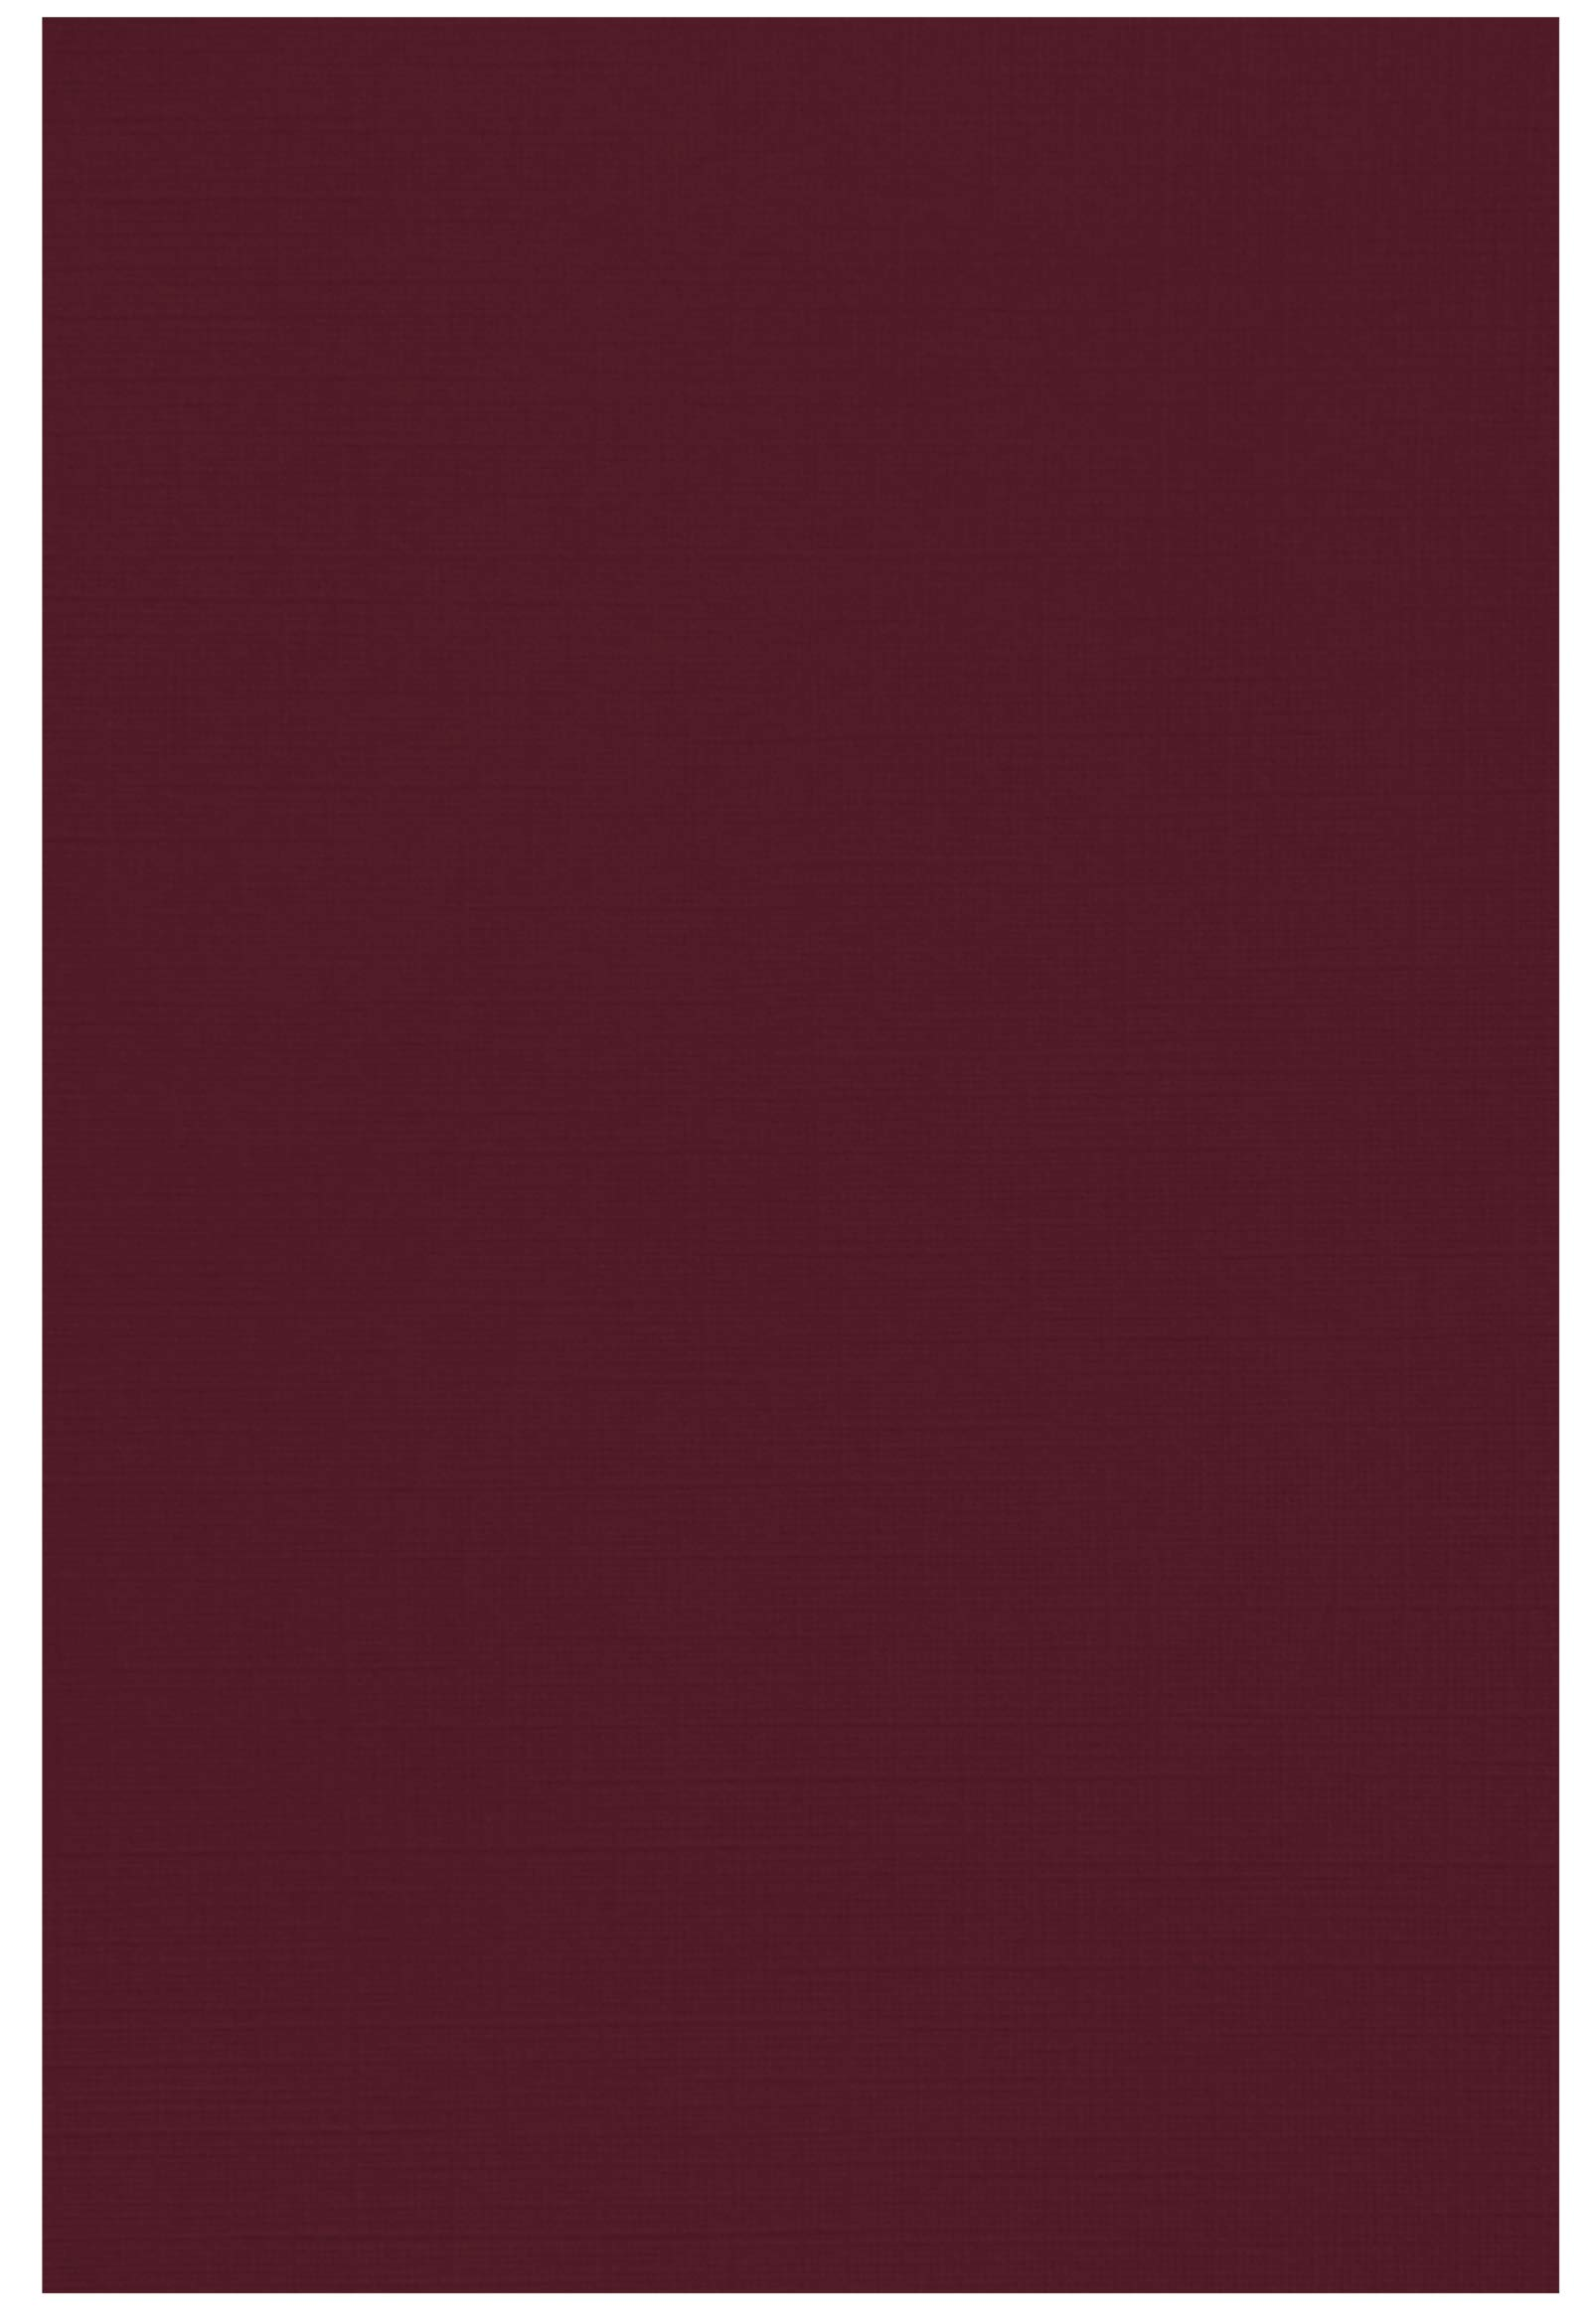 12 x 18 Cardstock - Burgundy Linen (250 Qty.) | Perfect for Holiday Crafting, Invitations, Scrapbooking, Cards and so much more! |1218-C-BGLI-250